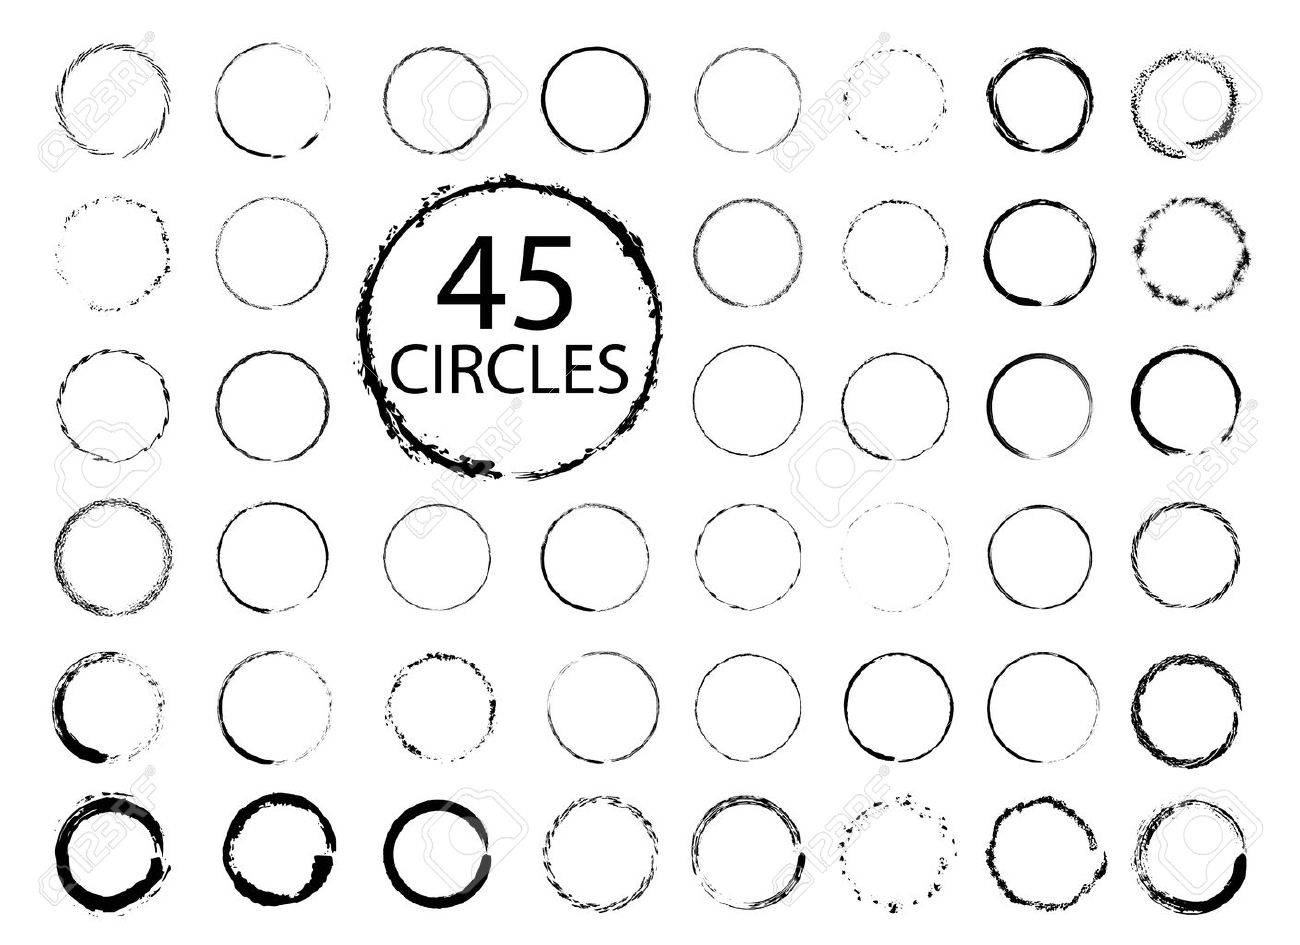 Big collection of hand drawn circles. Vector grunge design elements. - 64691919